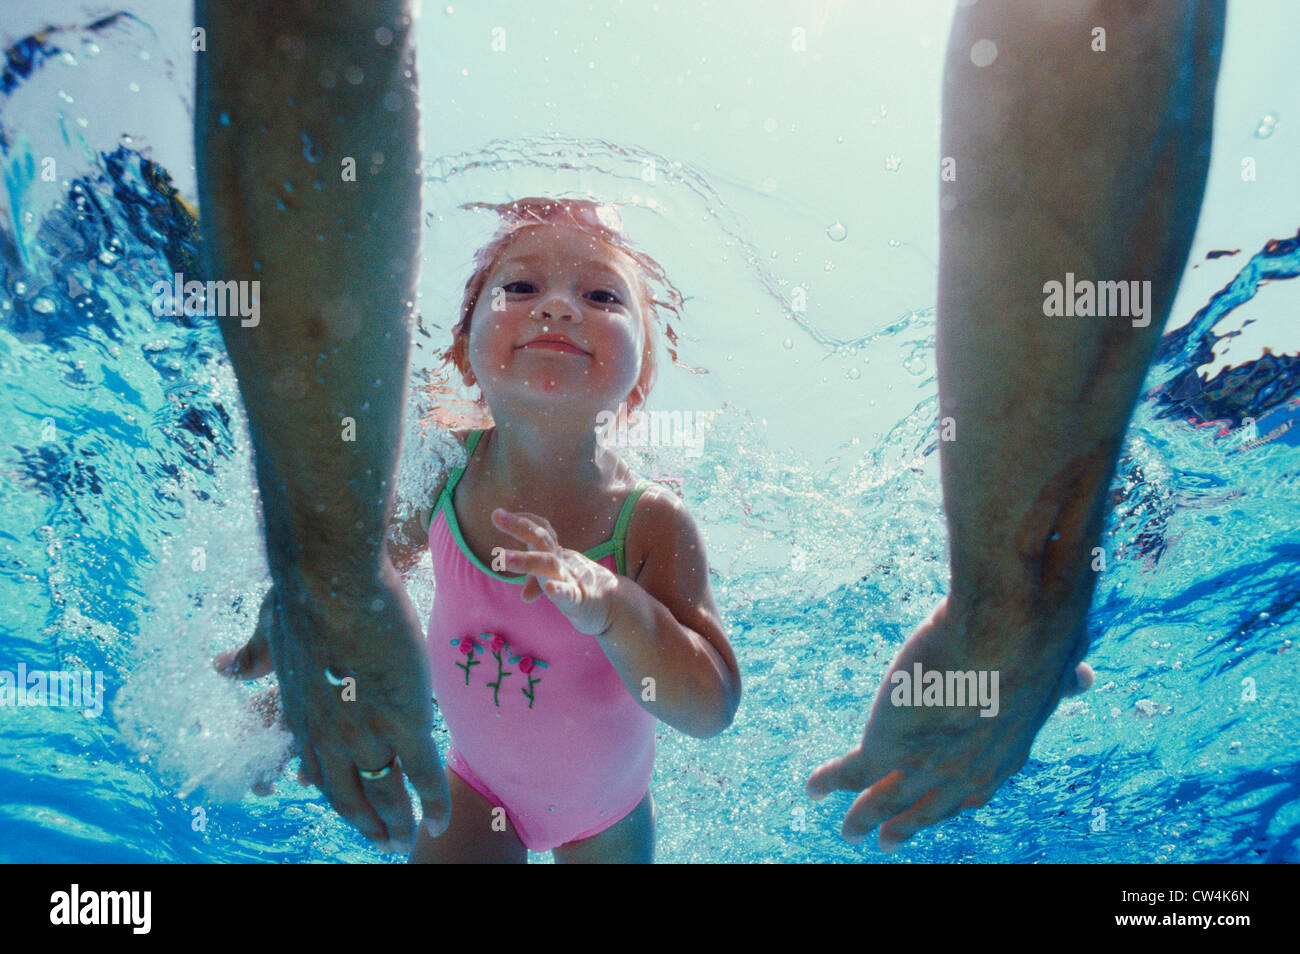 Close-up of father's hands reaching out to his daughter underwater - Stock Image